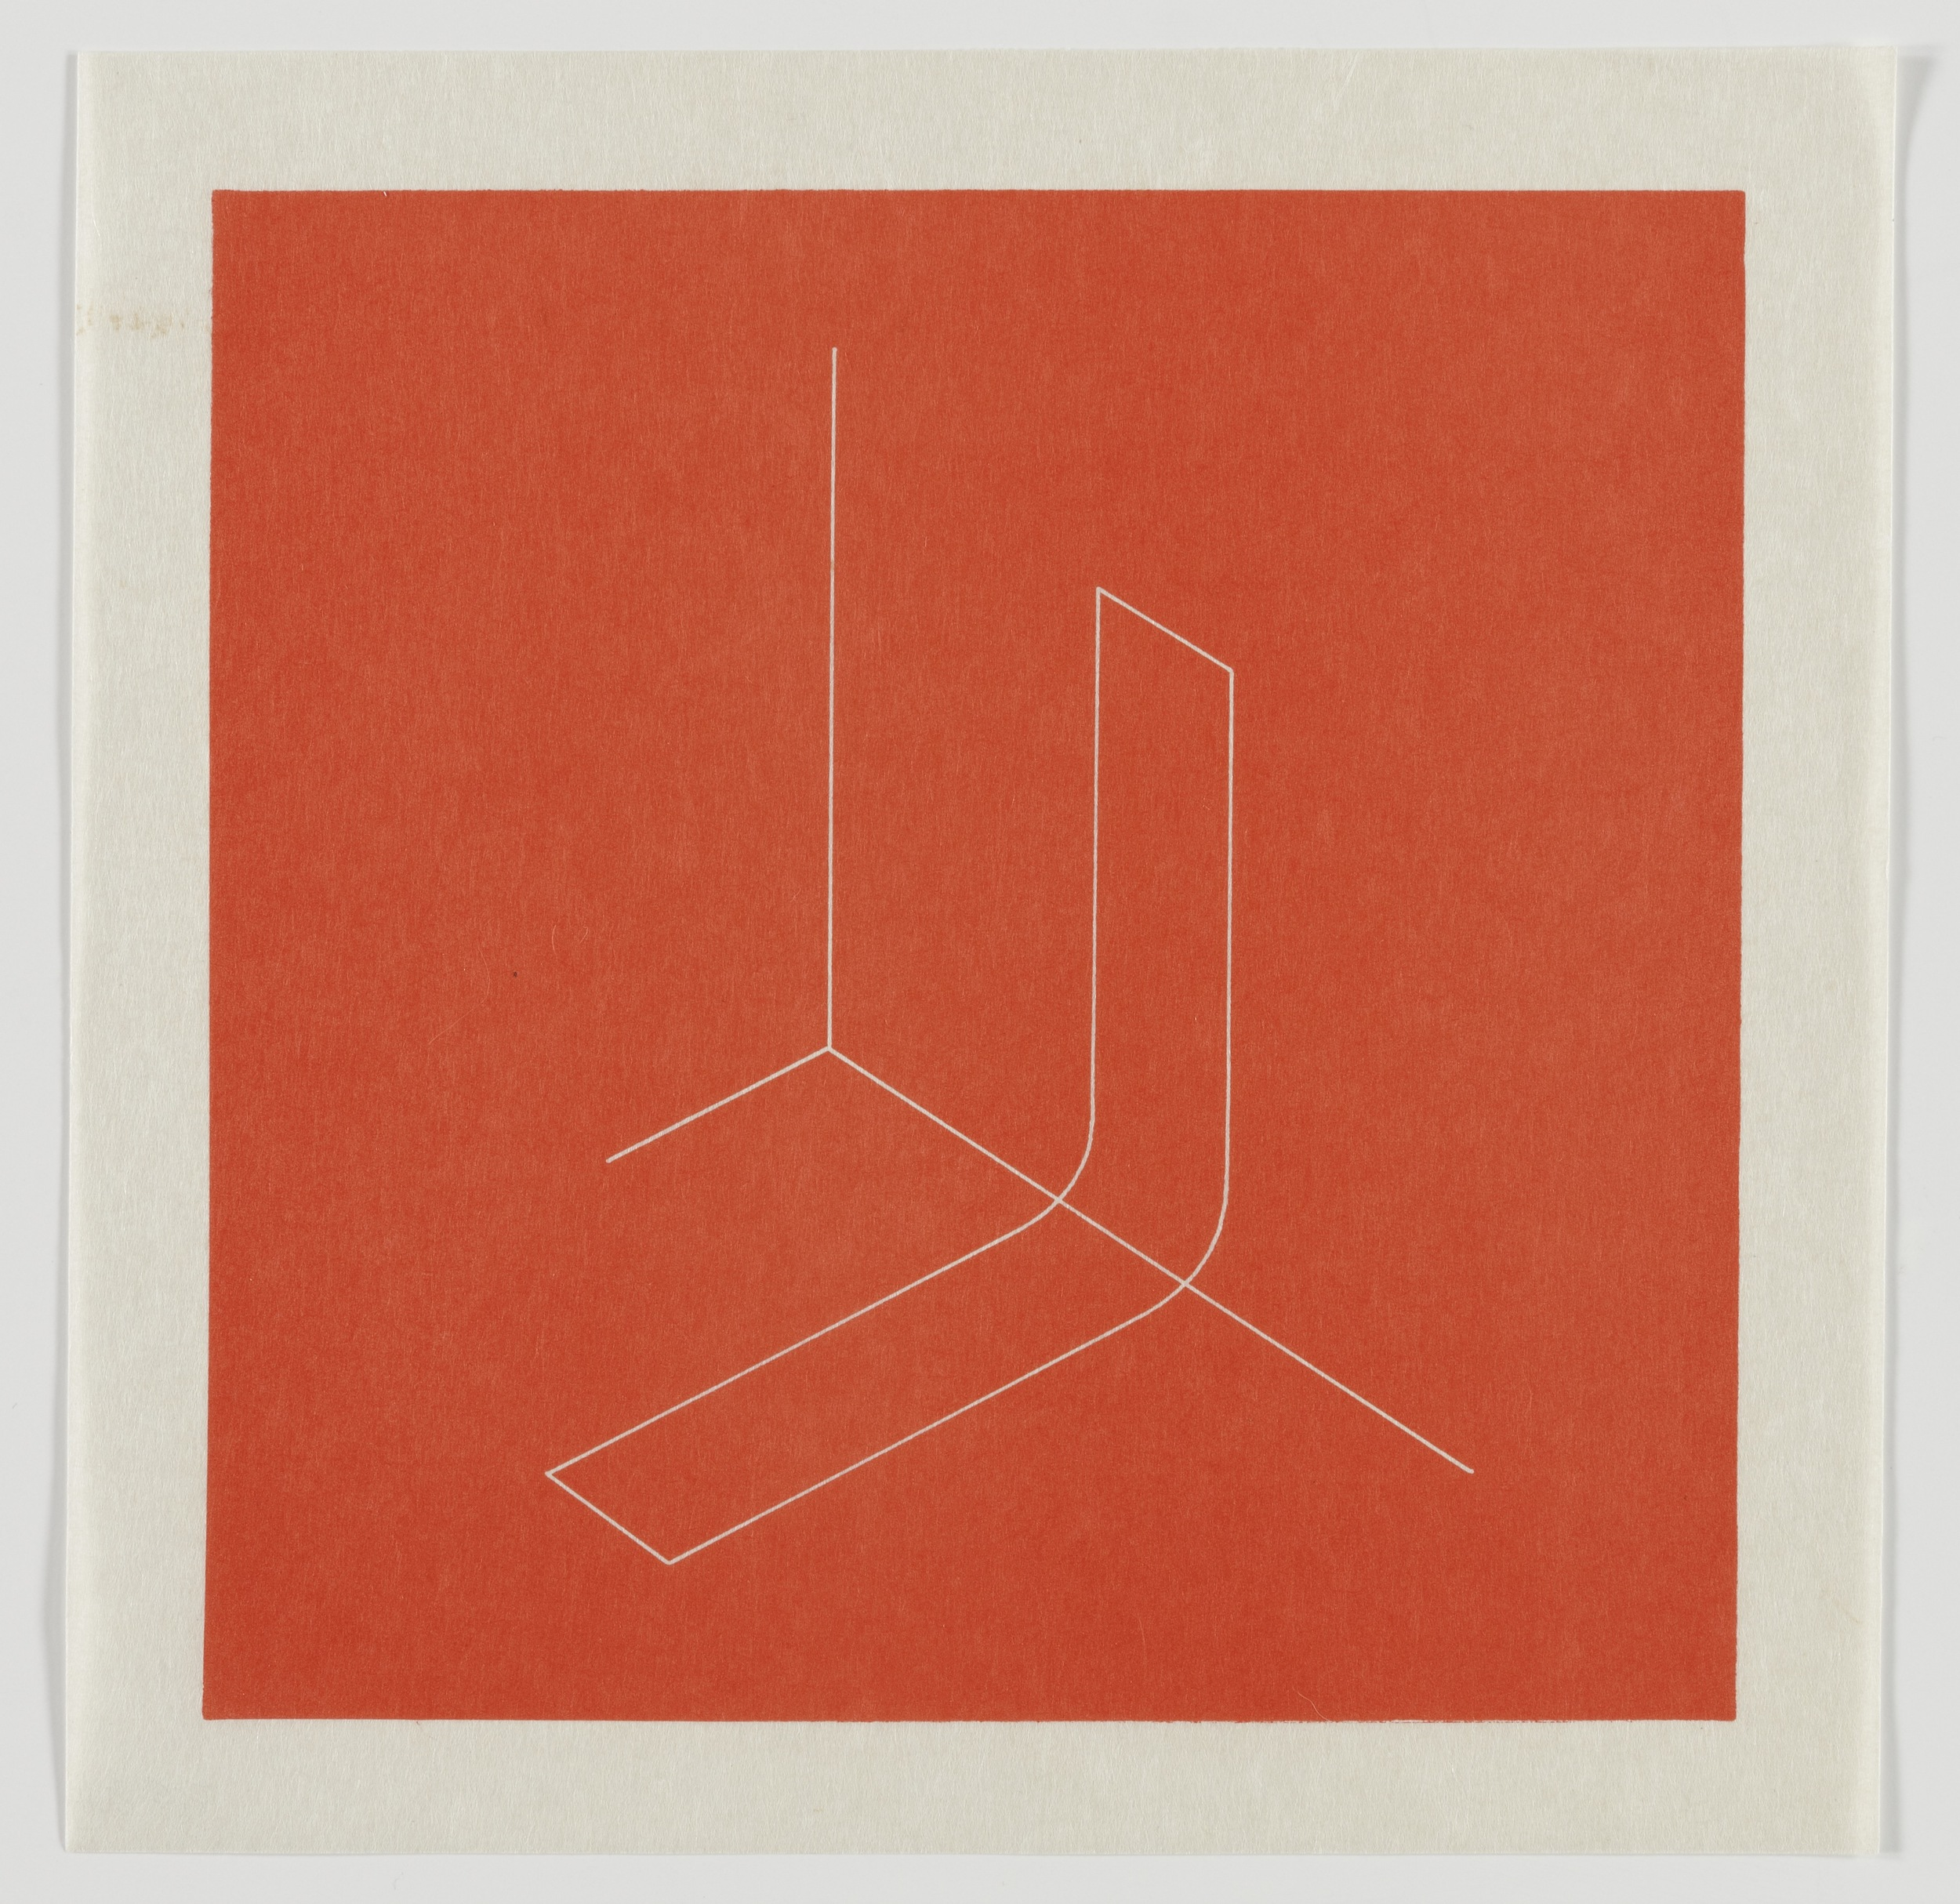 Fred Sandback, Untitled, 1979, Lithograph on Japanese paper